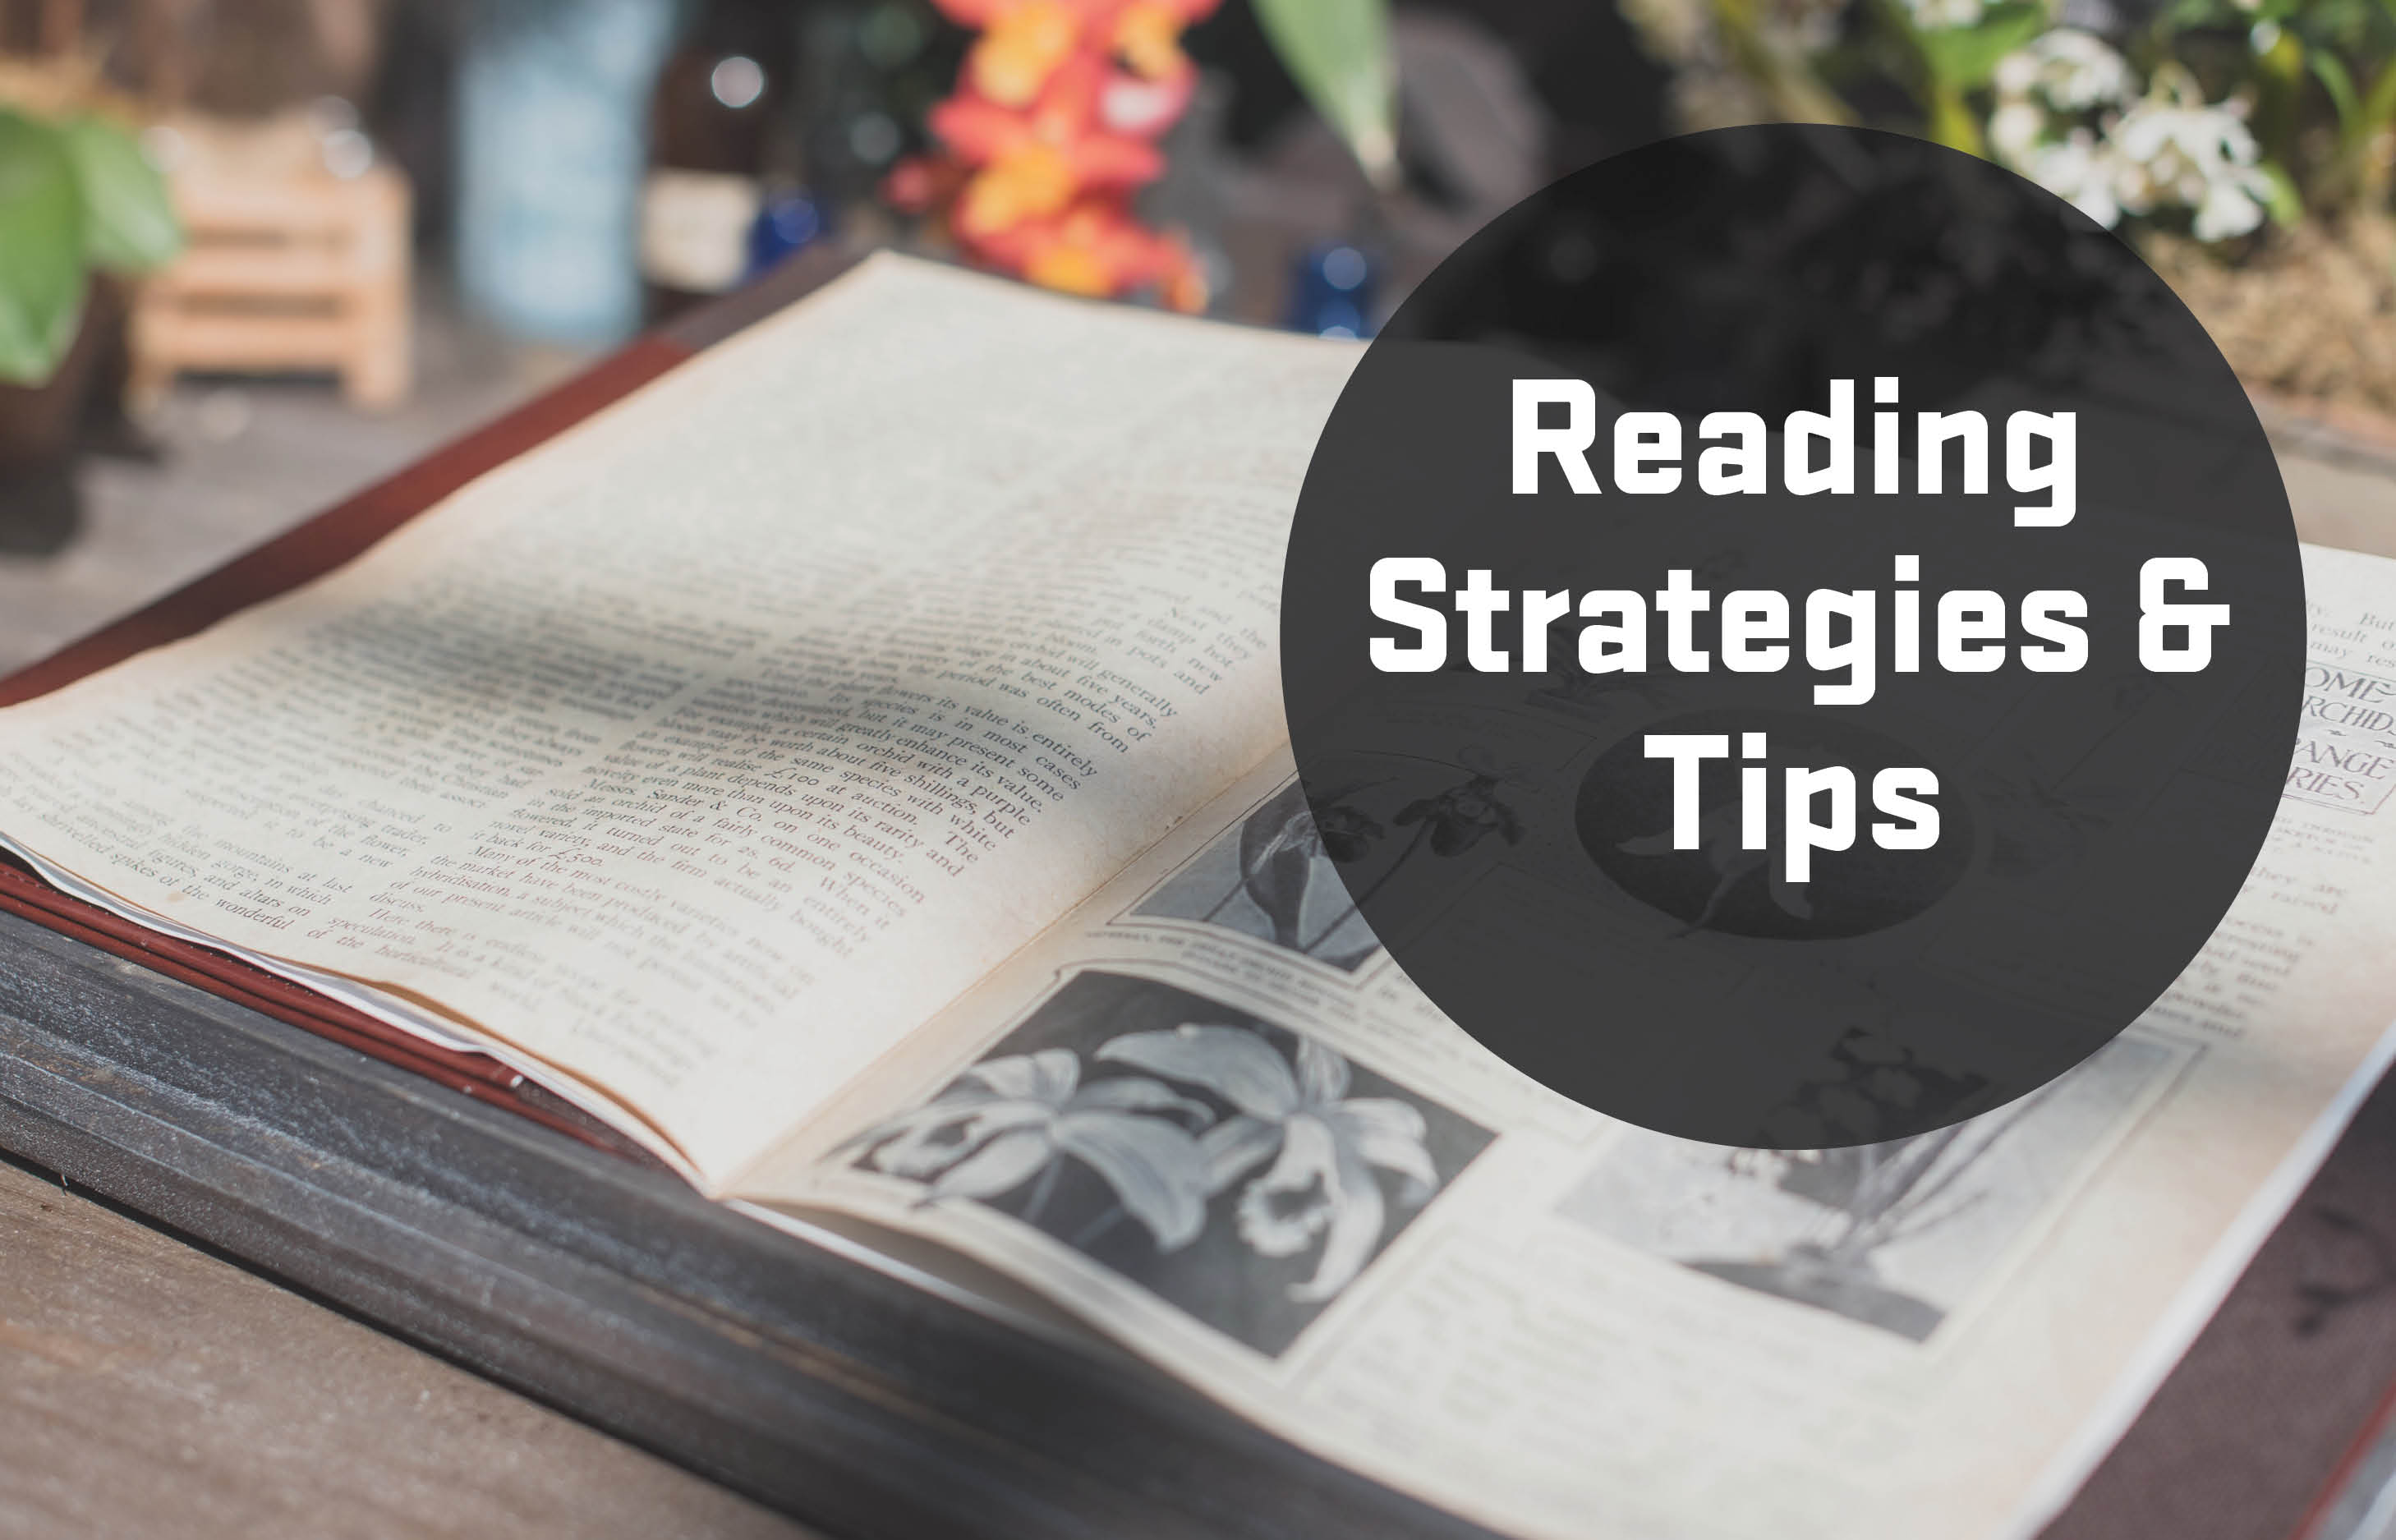 Reading strategies and tips